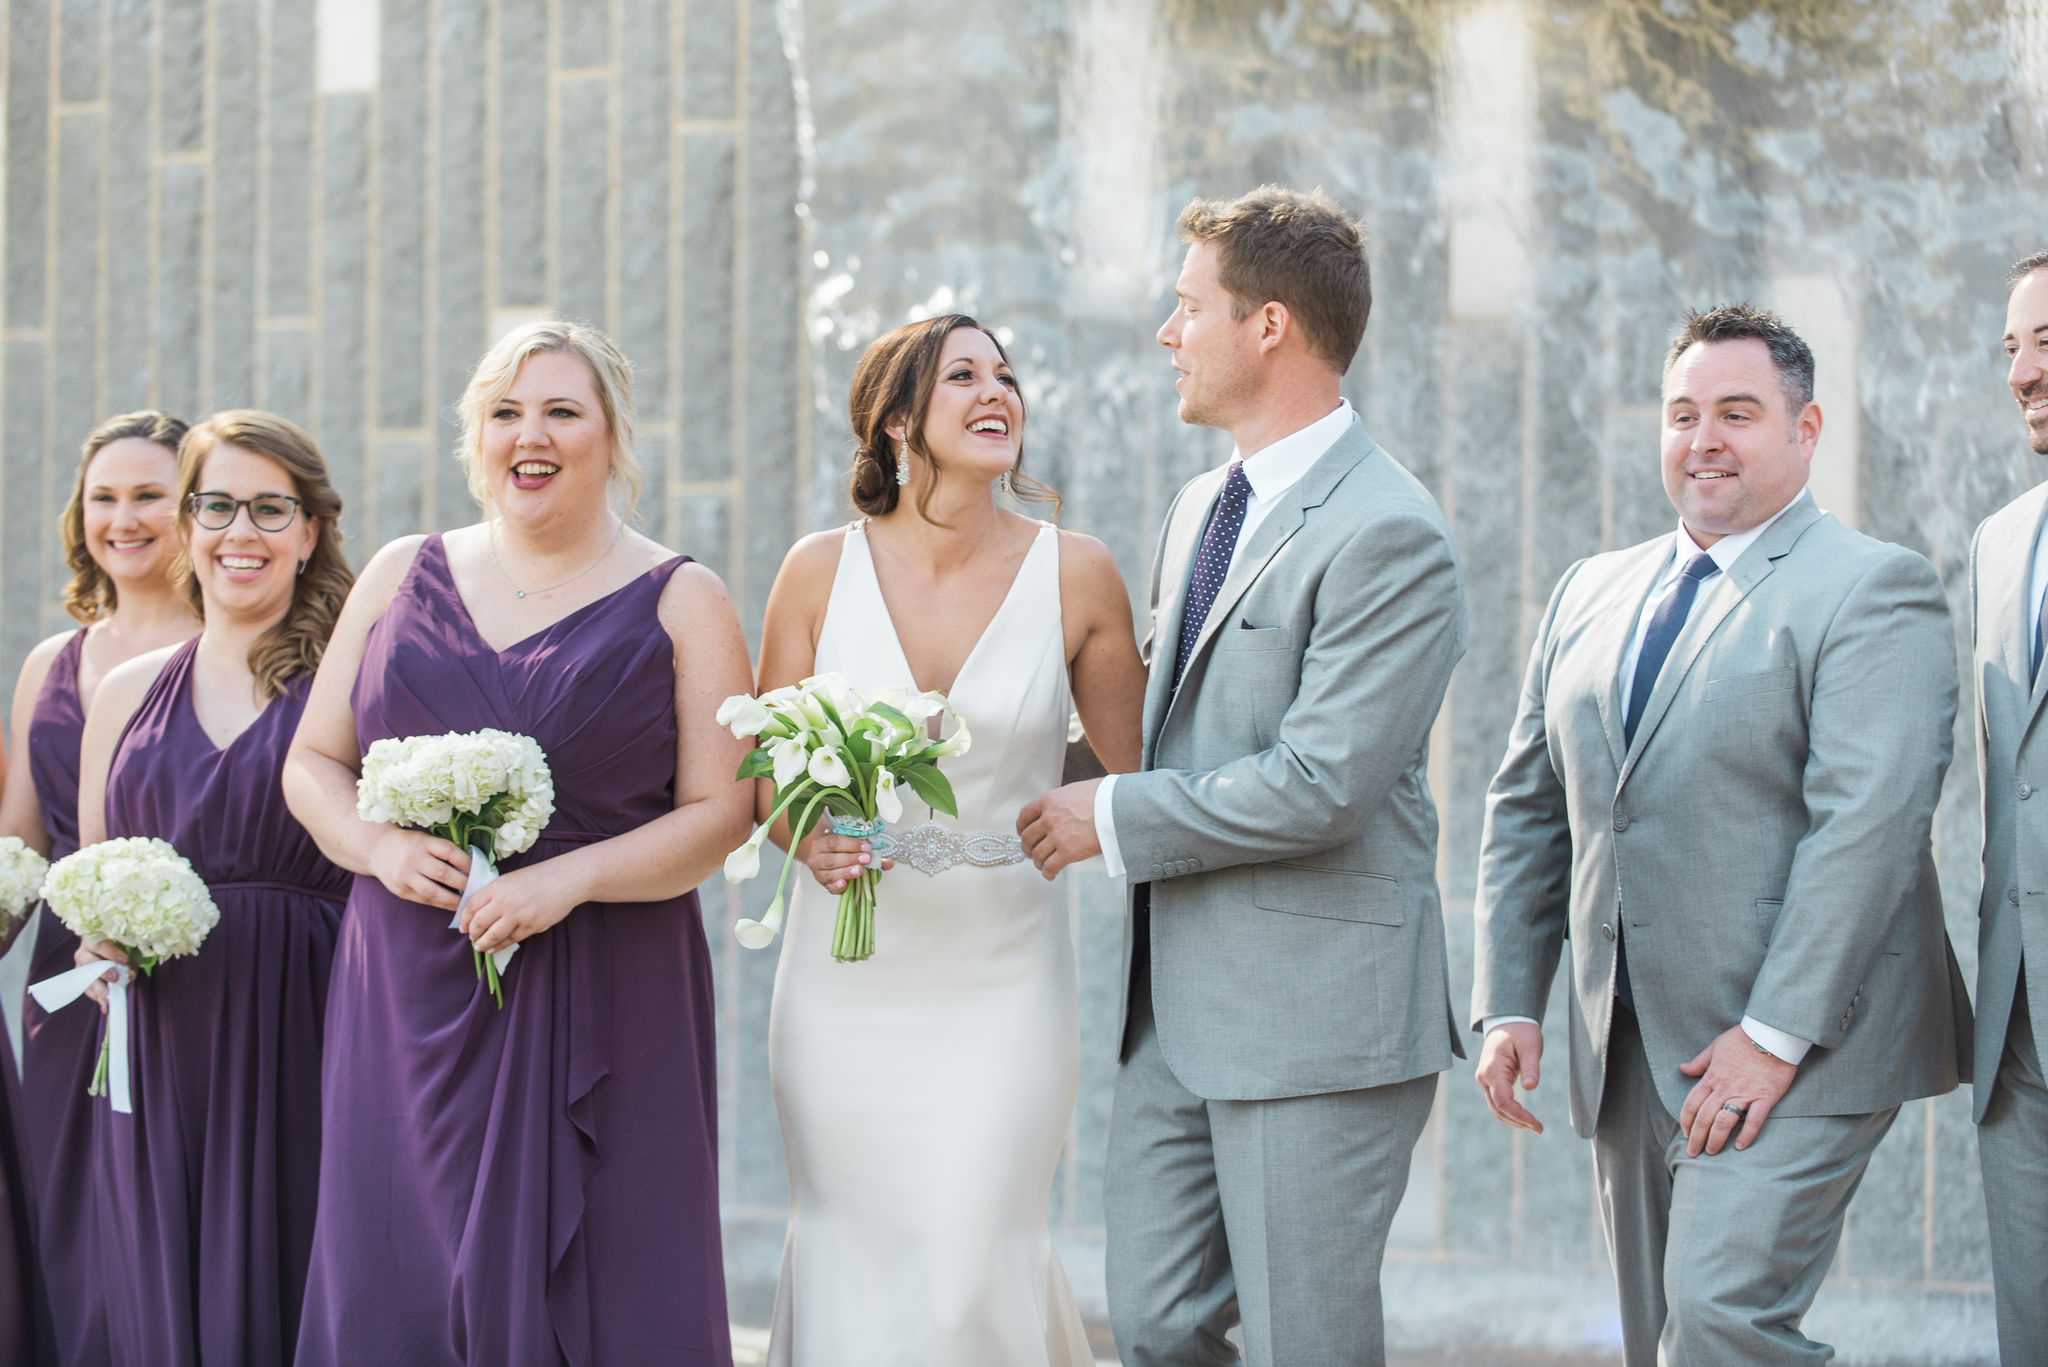 Bride and groom share a fun pose with their bridal party in Uptown Charlotte captured by Sunshower Photography